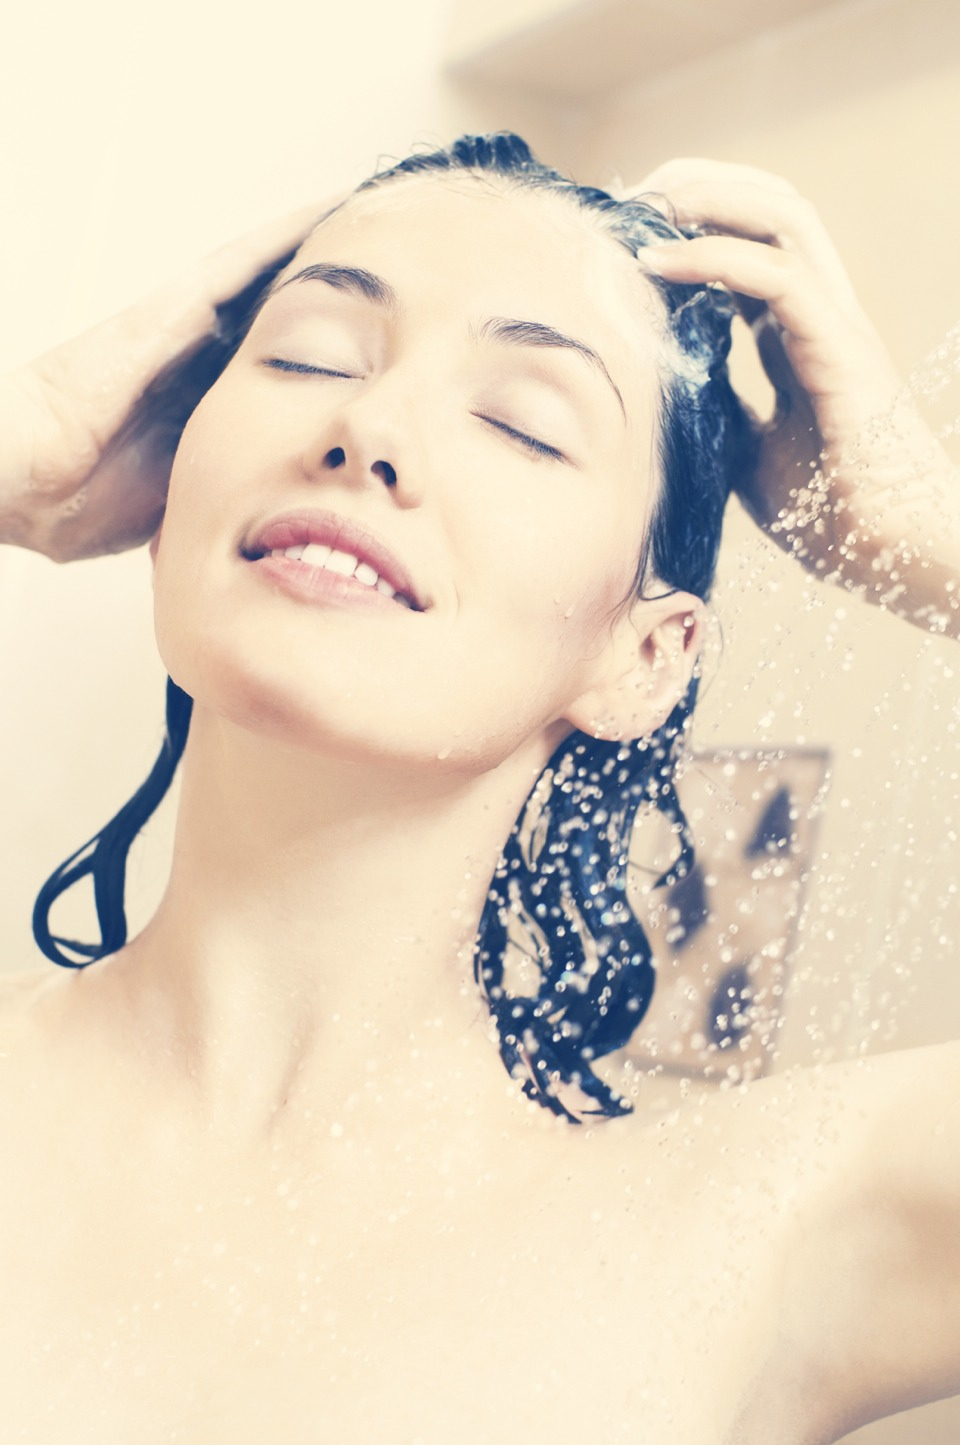 Actually ladies it's best to wash your hair every three days washing your hair every day or even every two days isn't that the healthy it deprives your hair of its natural oils and nutrients that your hair needs.try massaging your scalp every night to allow blood flow to your head that help growth!